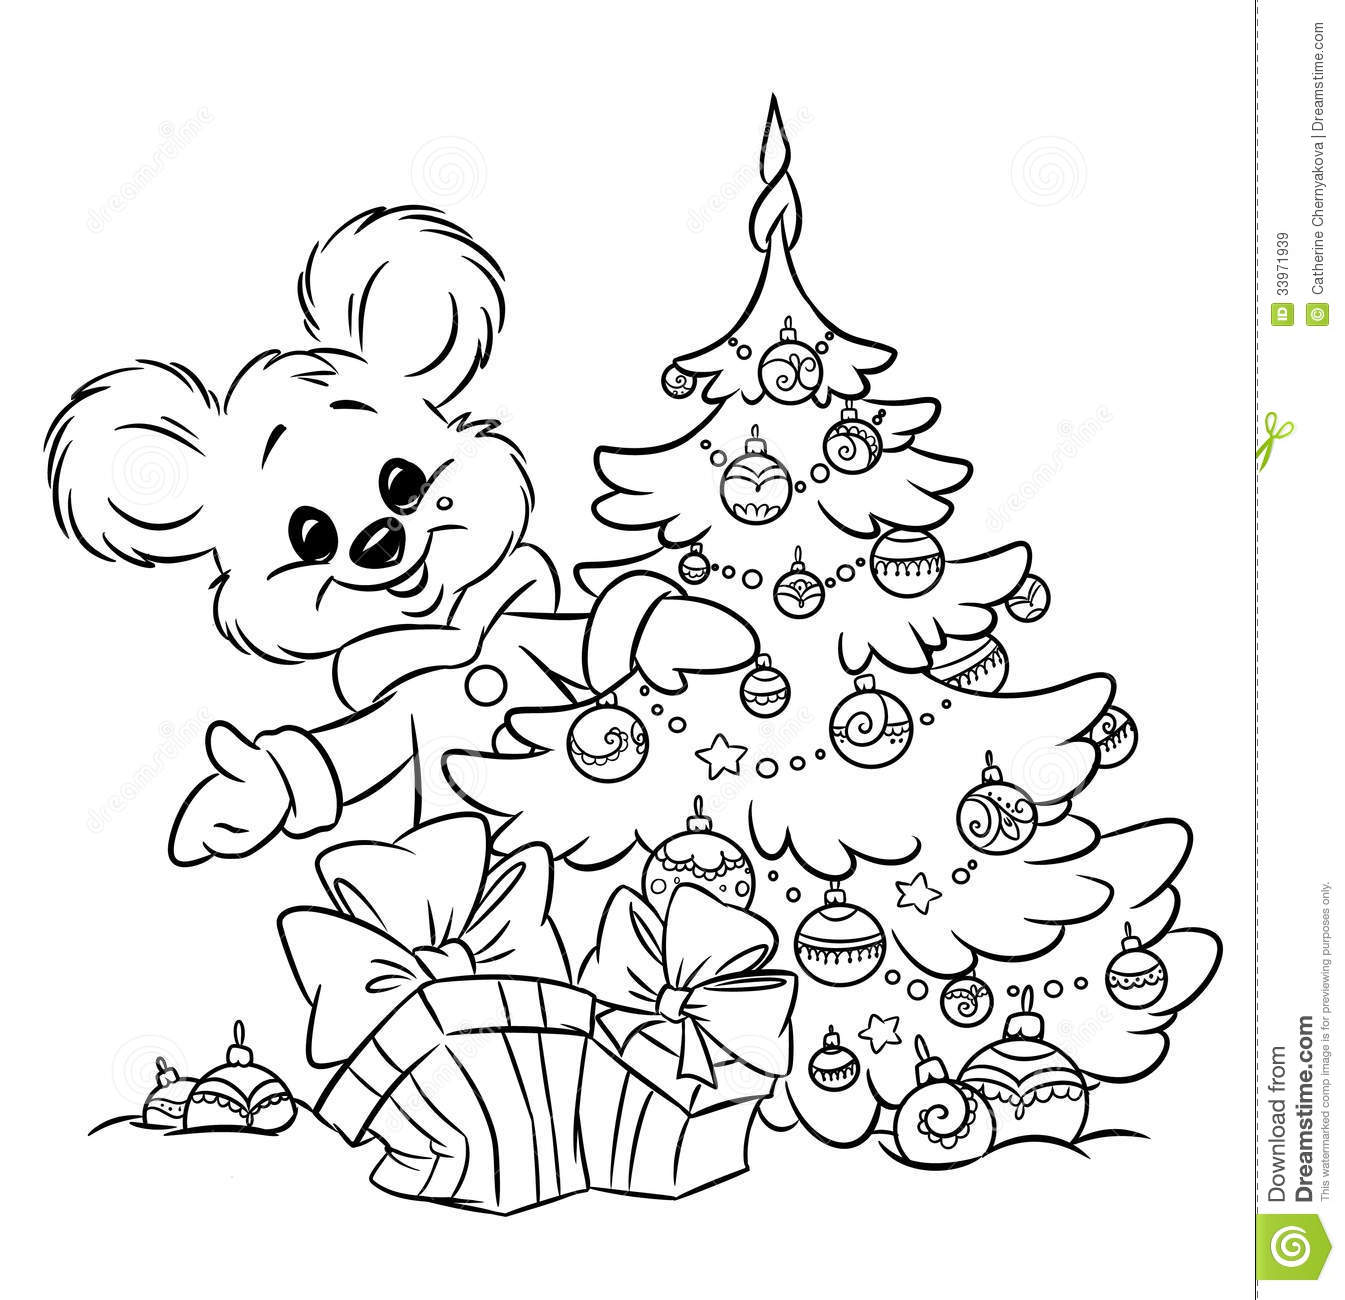 christmas teddy bear tree ornaments gift colorin royalty free stock